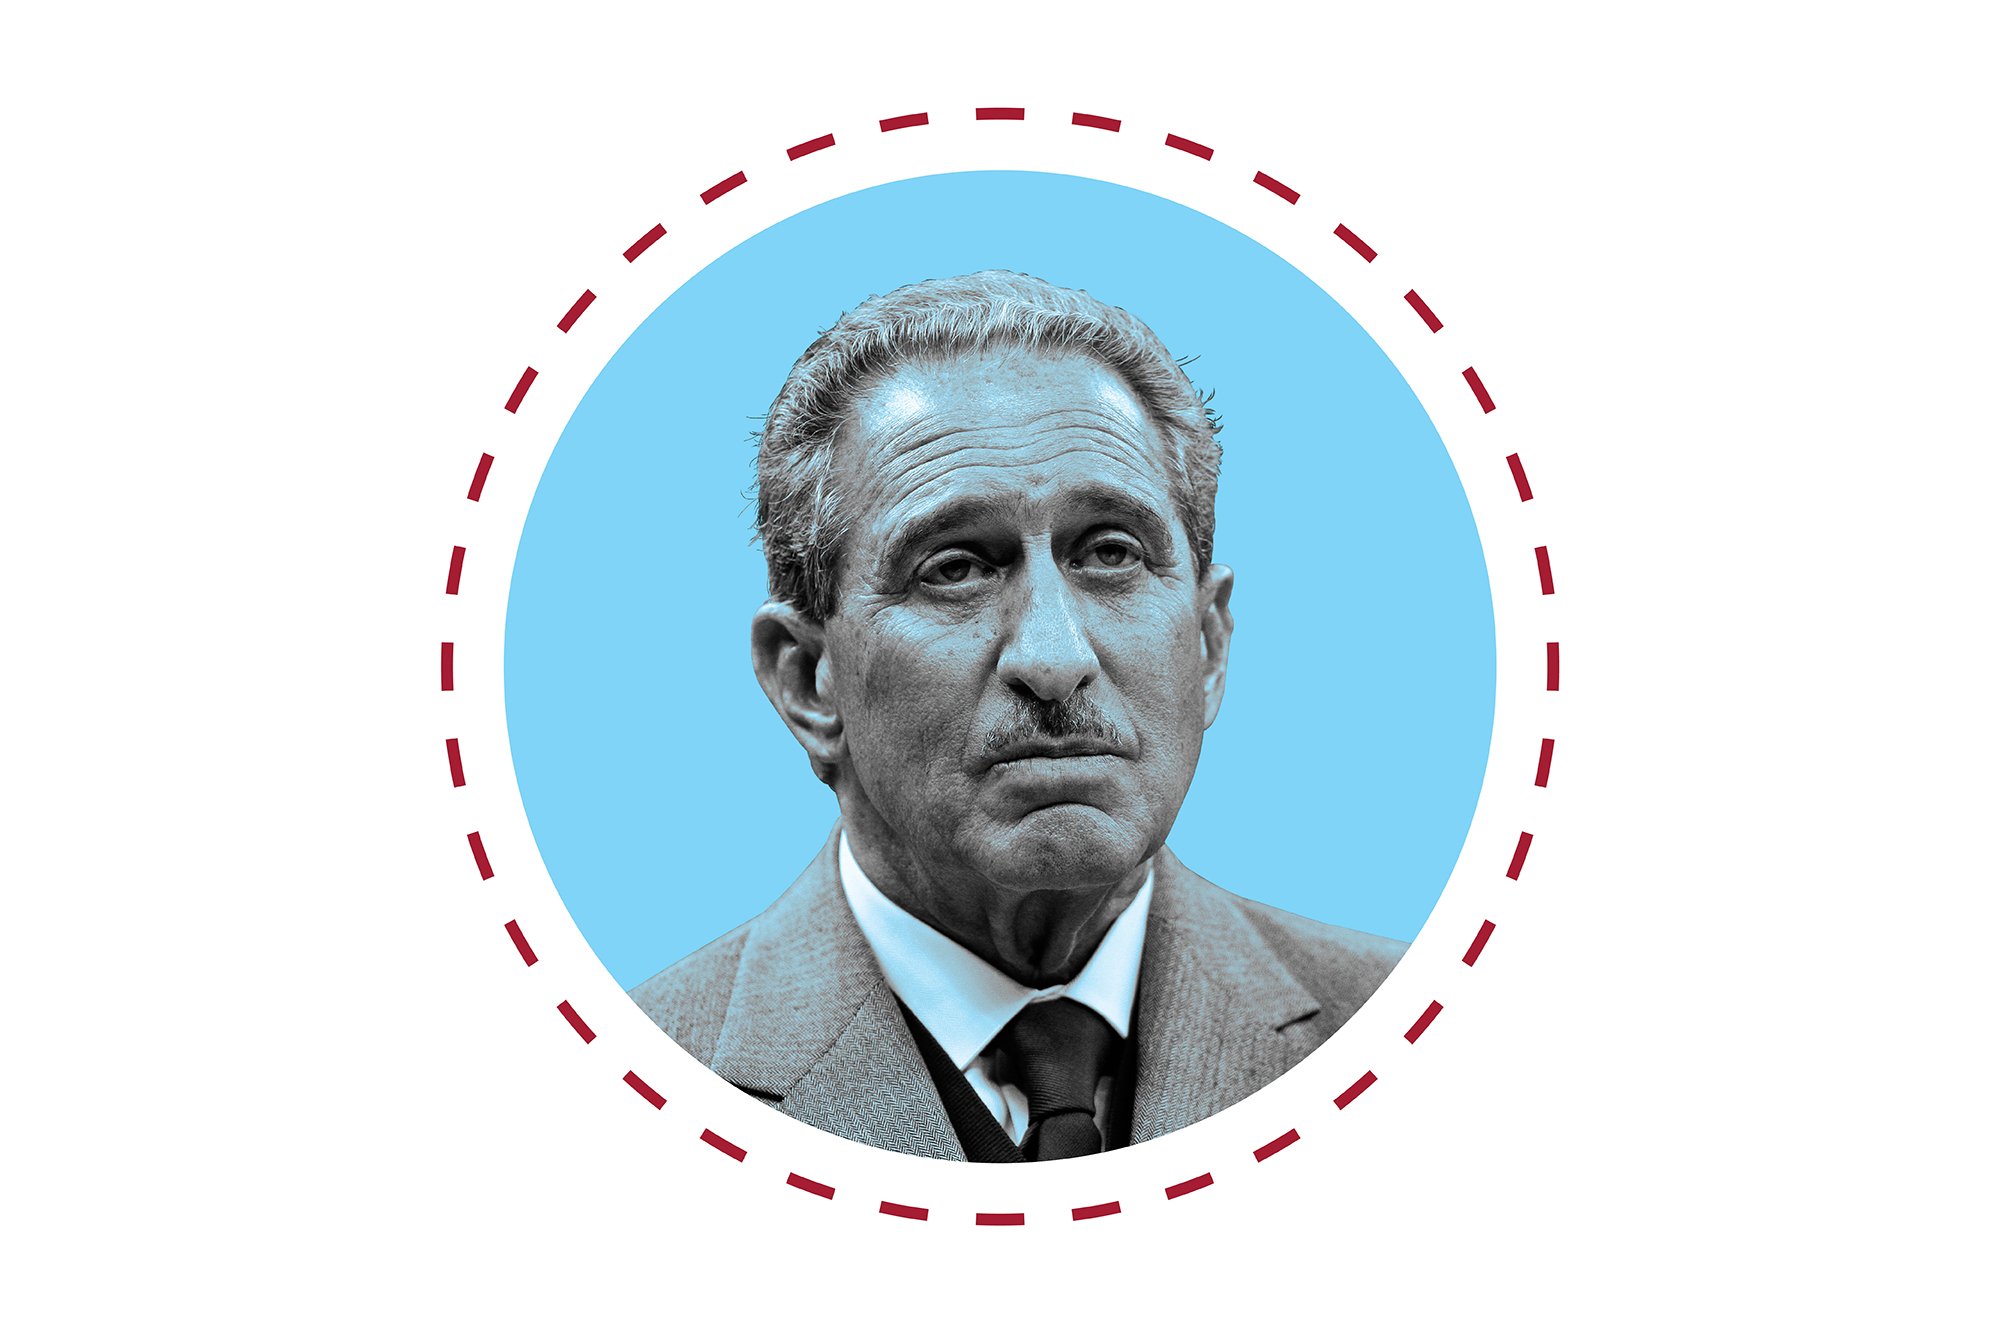 Atlanta Falcons Owner: Arthur Blank net worth, political donations